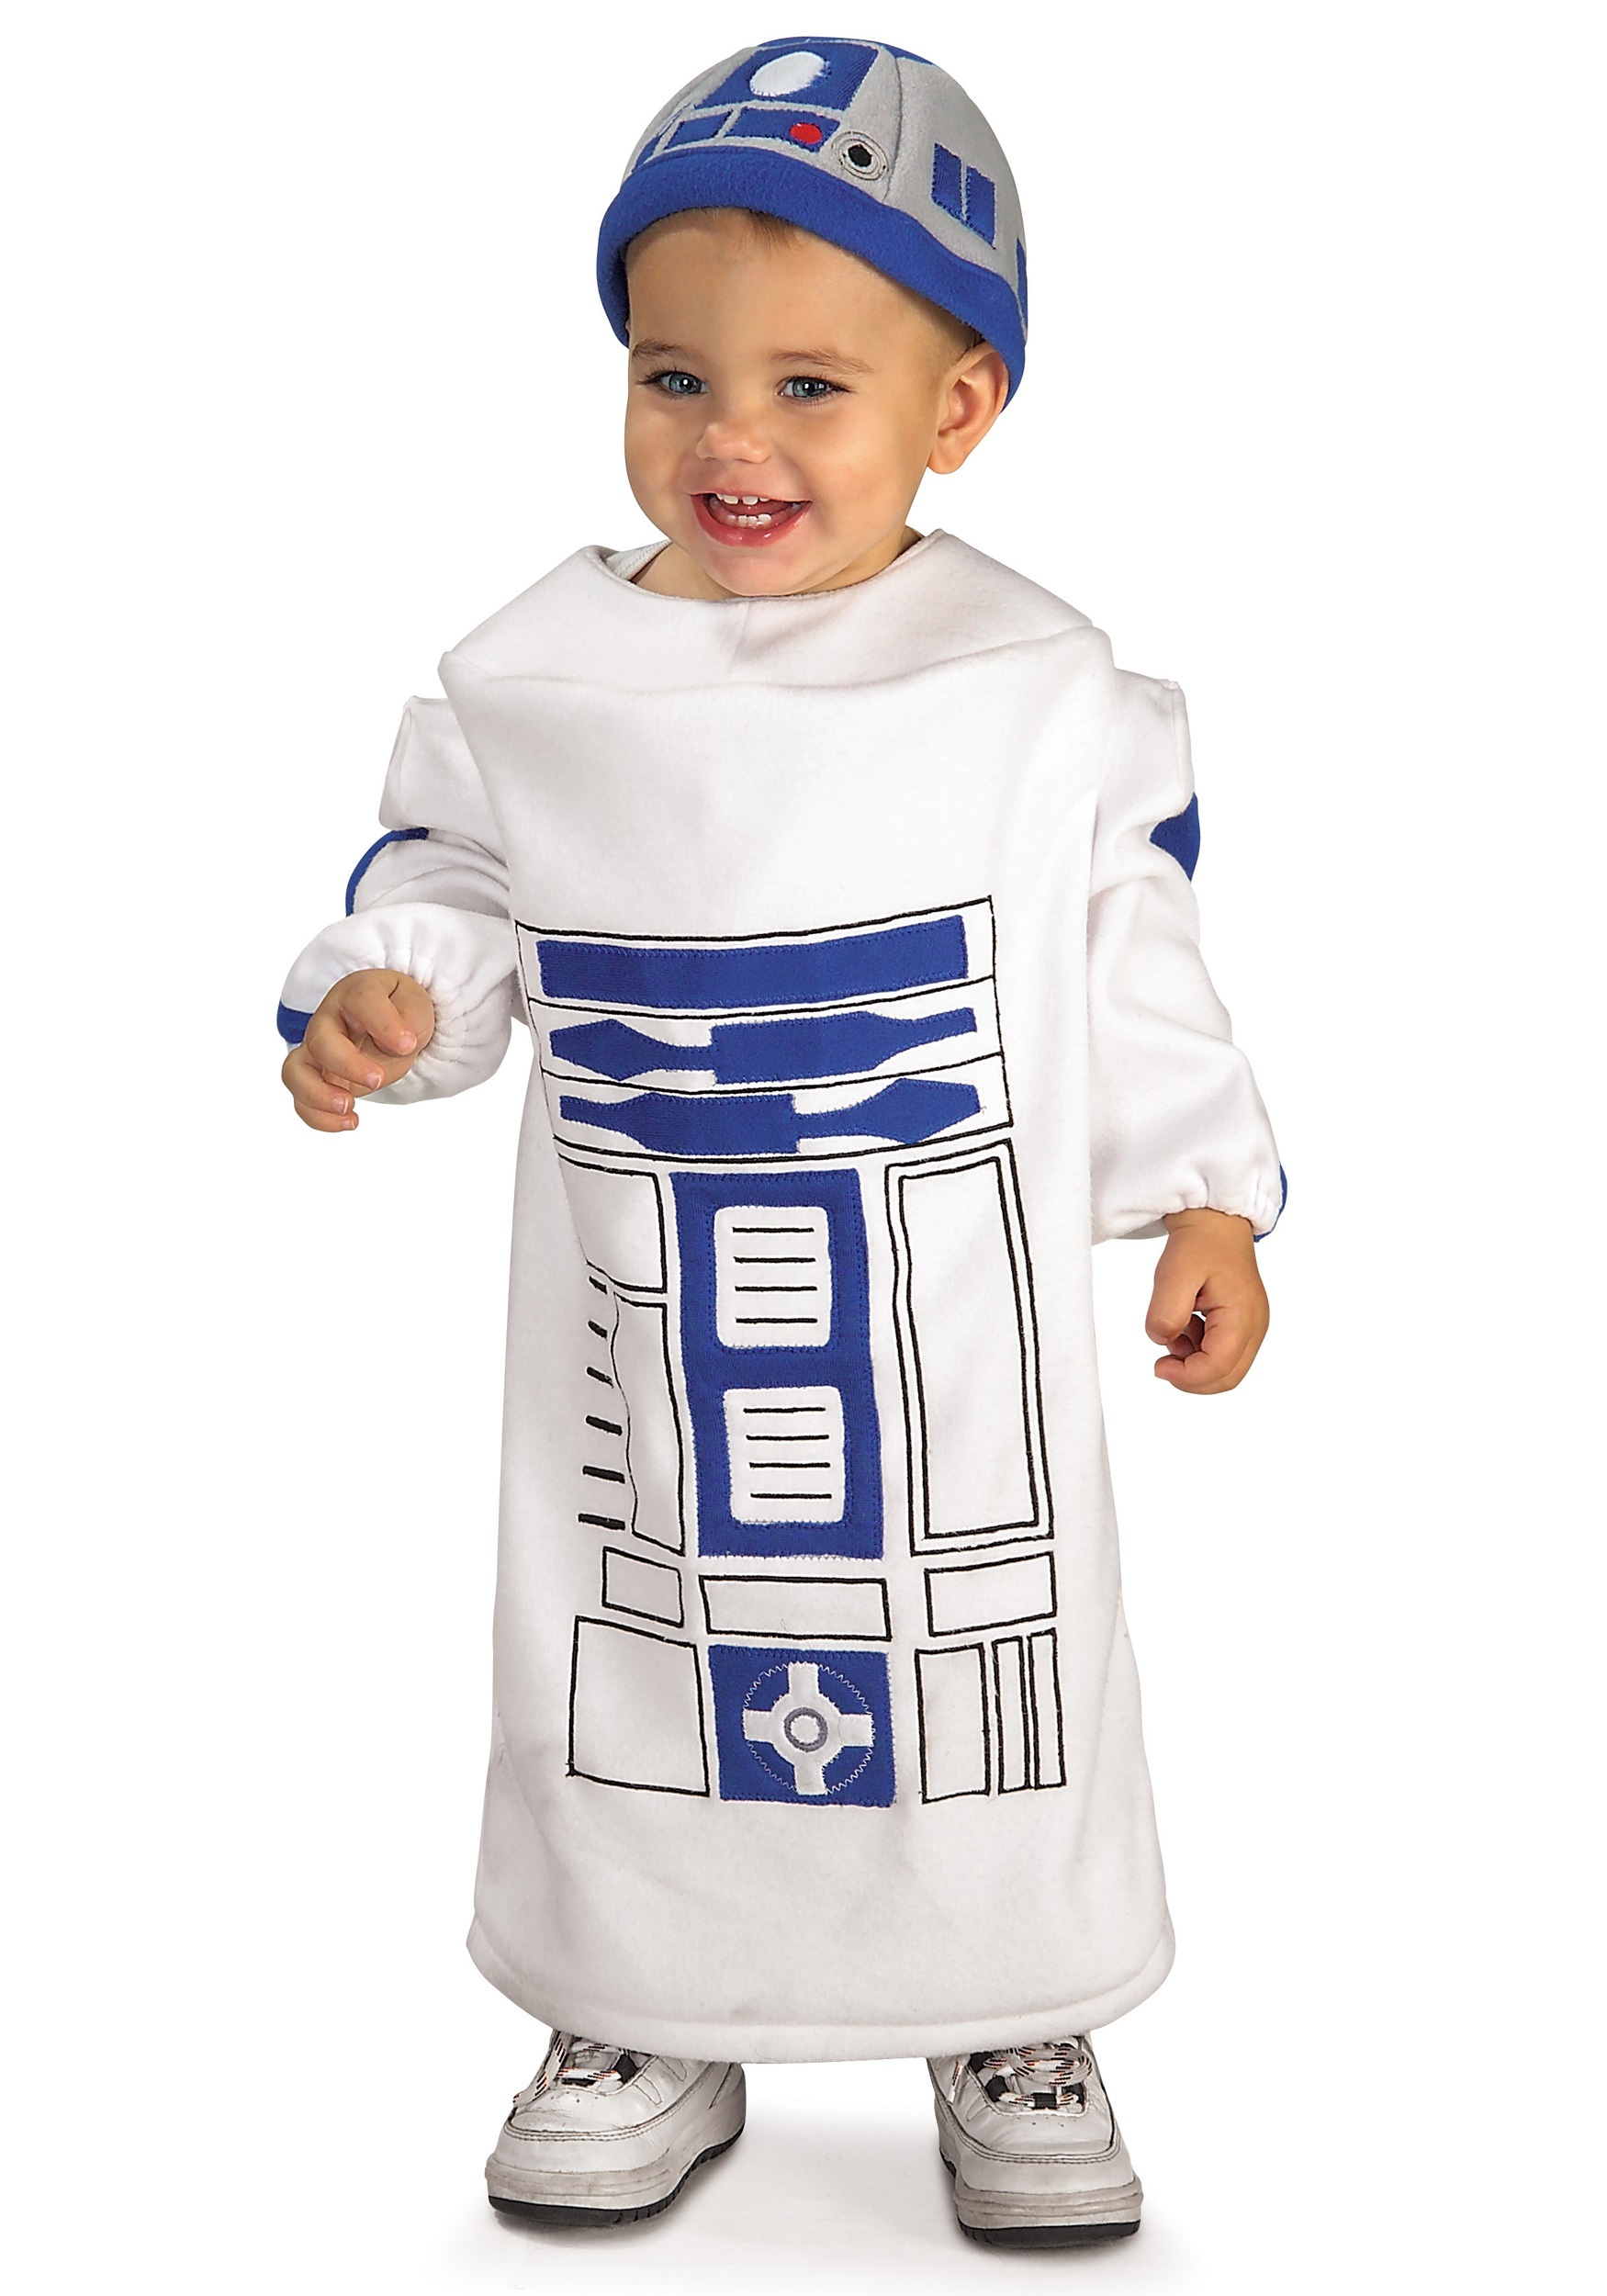 R2d2 costumes for kids adults halloweencostumes child r2d2 costume solutioingenieria Image collections